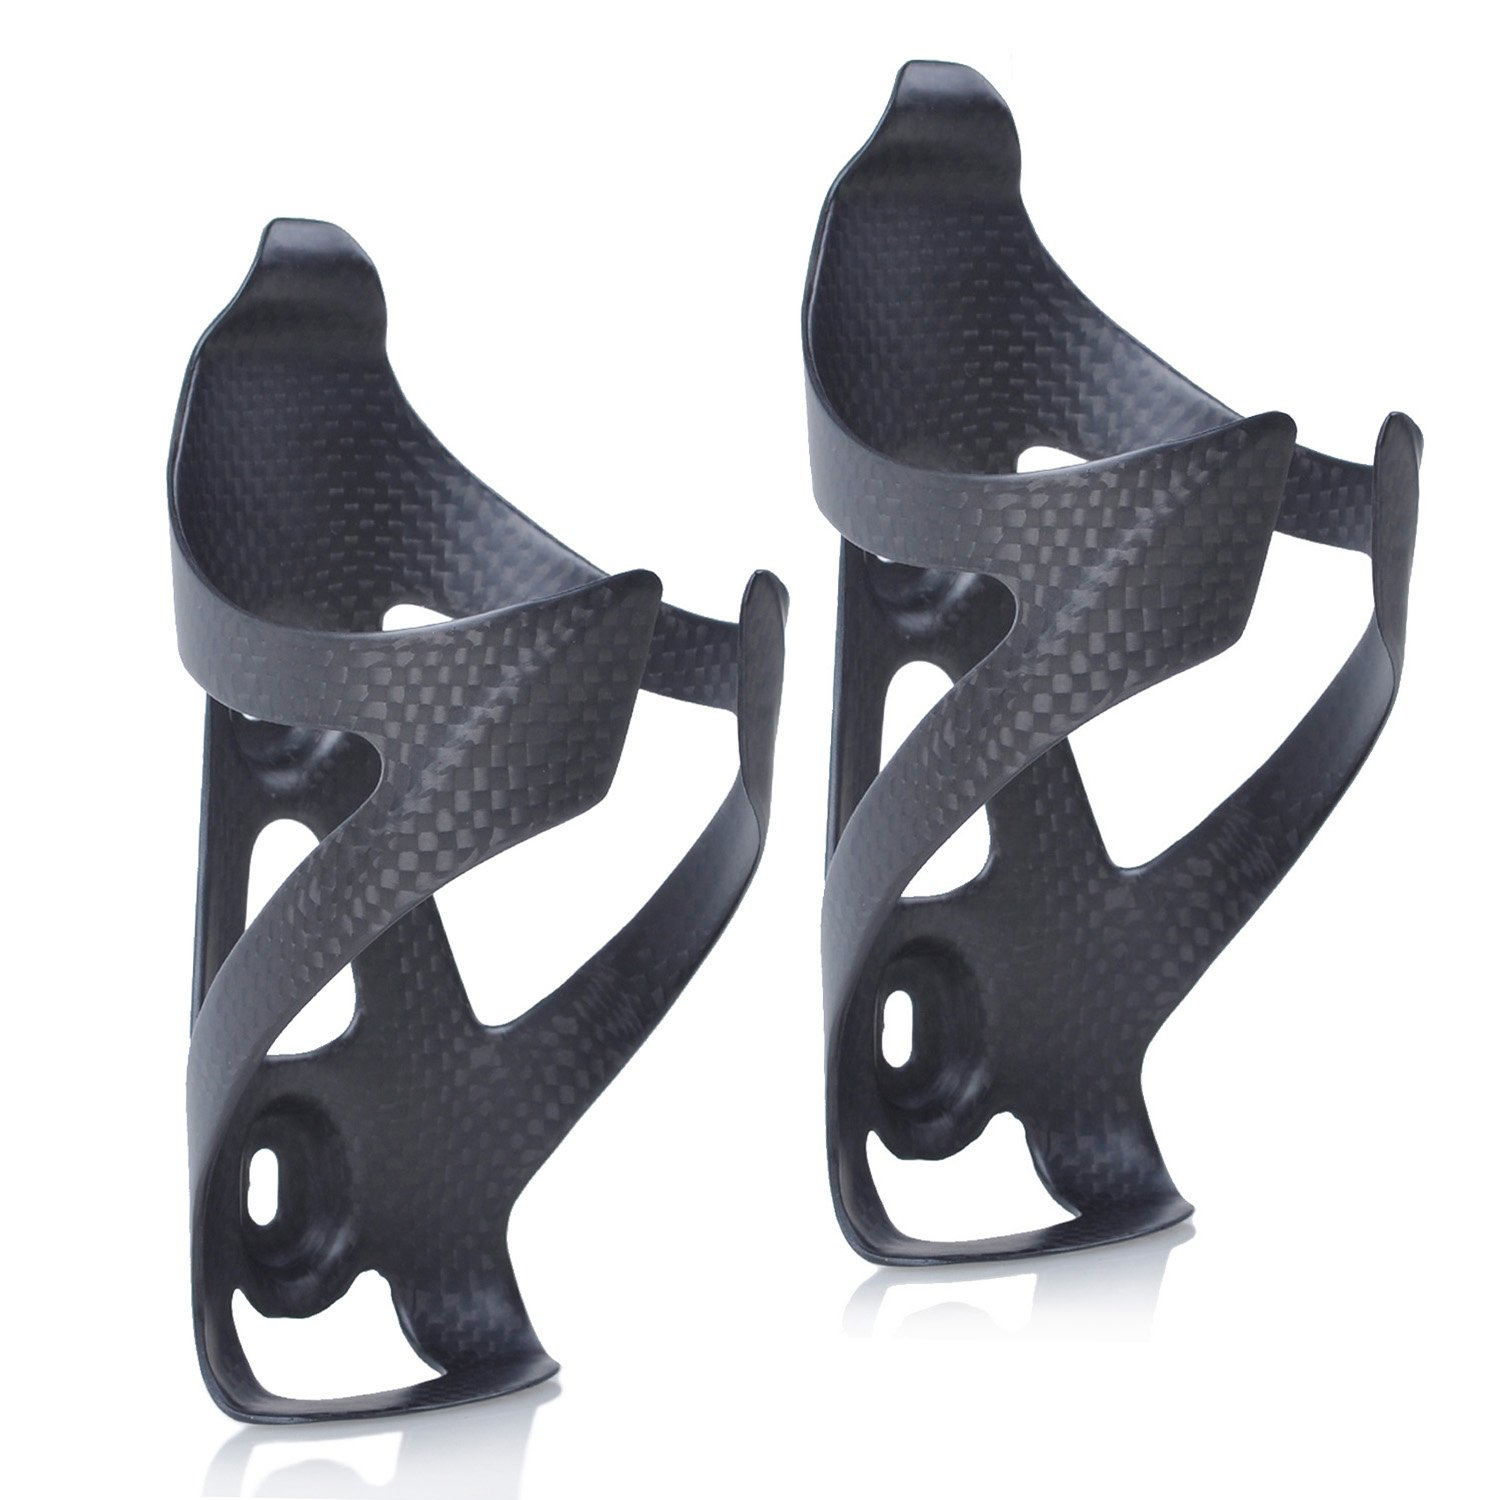 ThinkTop Ultra-Light Full Carbon Fiber Bicycle Bike Drink Water Bottle Cage Holder Brackets for Road Bike MTB Cycling